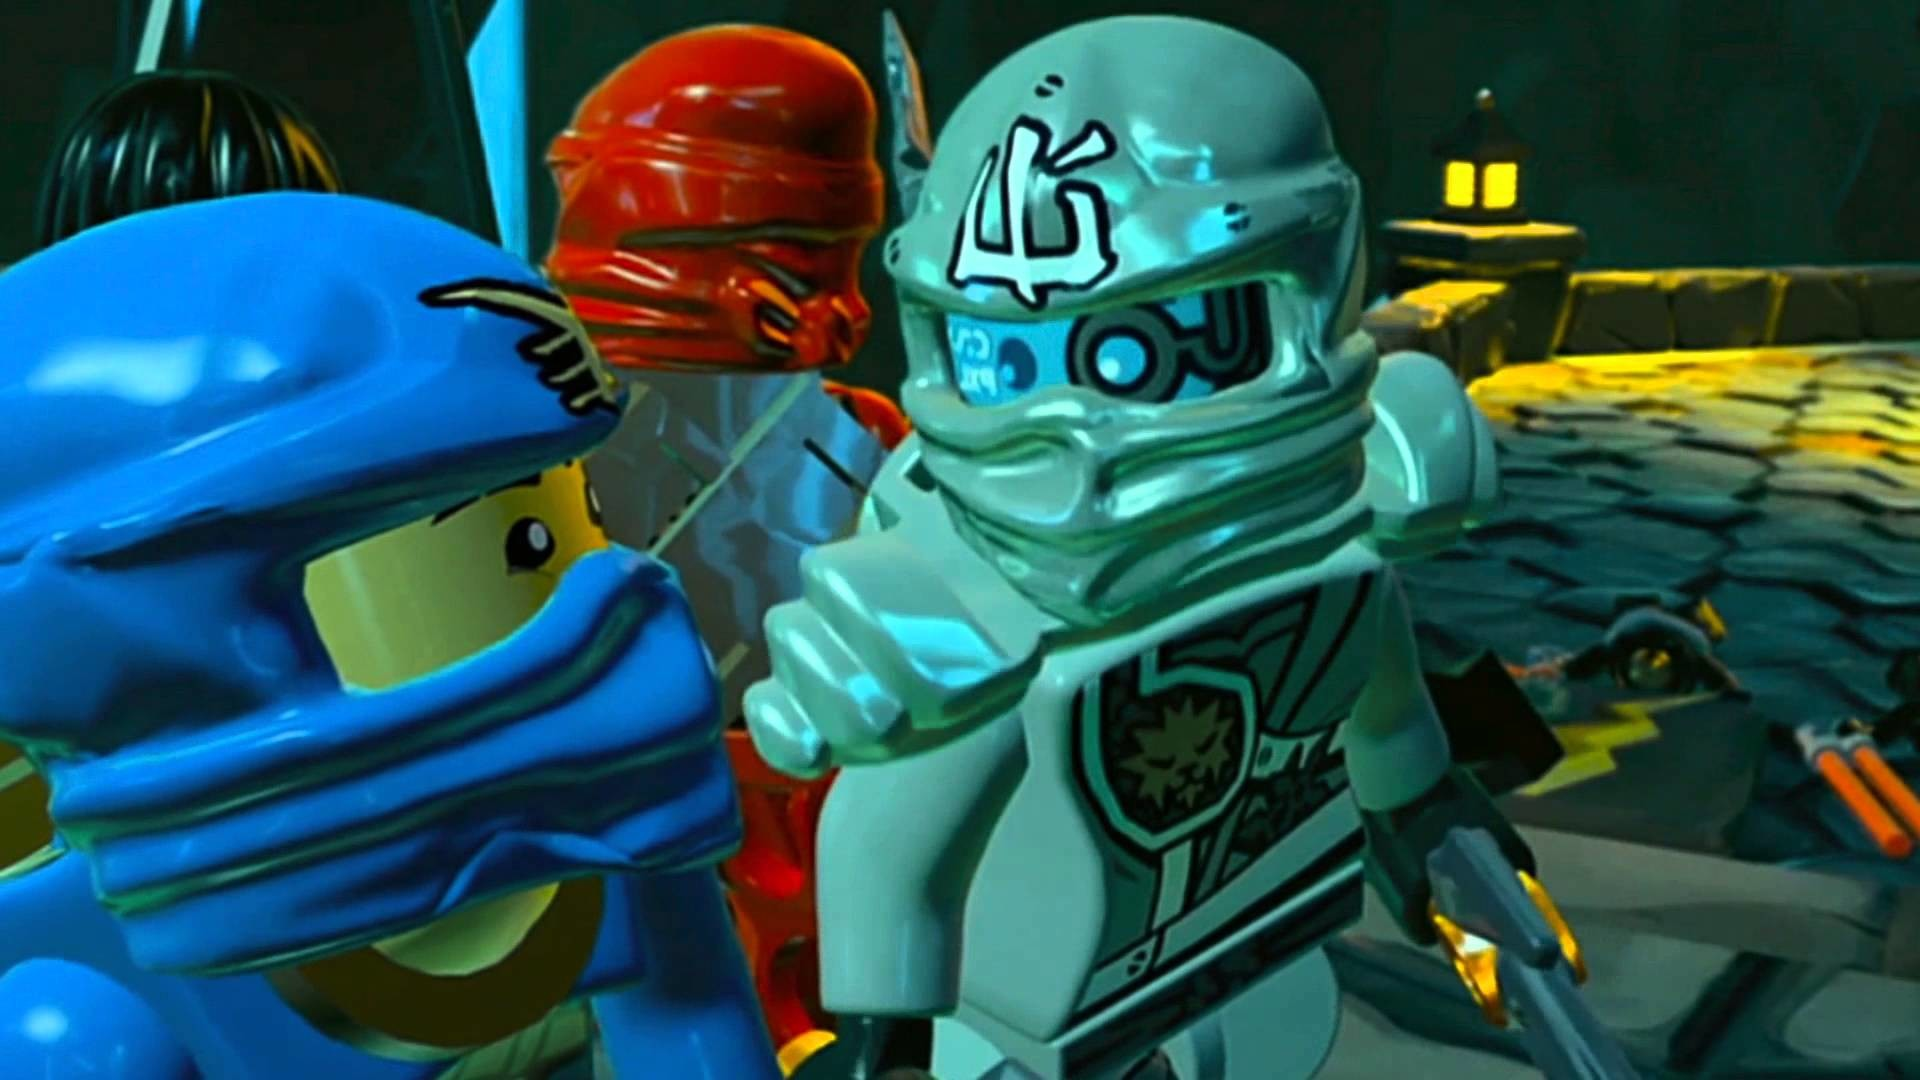 LEGO NINJAGO: SHADOW OF RONIN NOW AVAILABLE ON iPHONE, iPAD and iPOD TOUCH